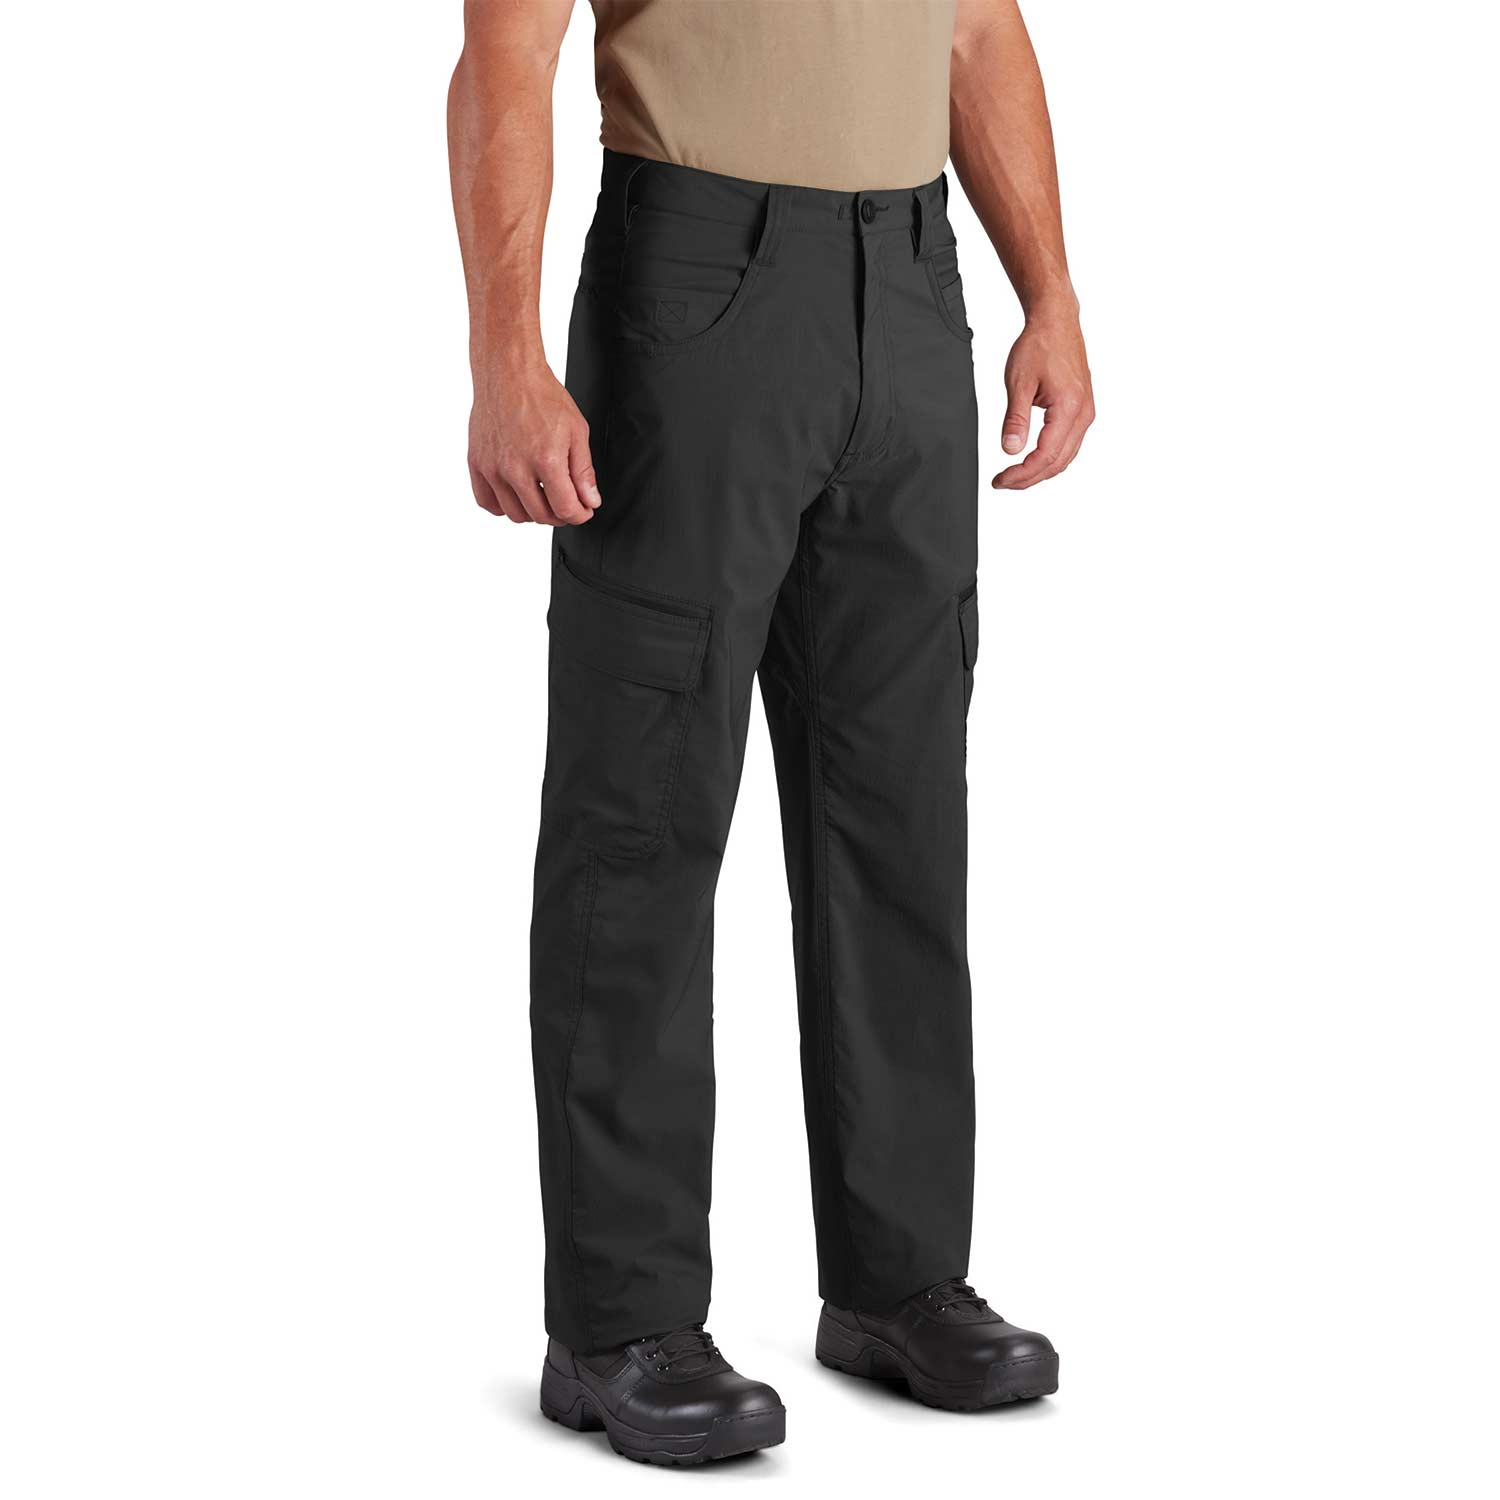 Propper Summerweight Lightweight Tactical Pants Men/'s Duty Pants Hiking Trousers